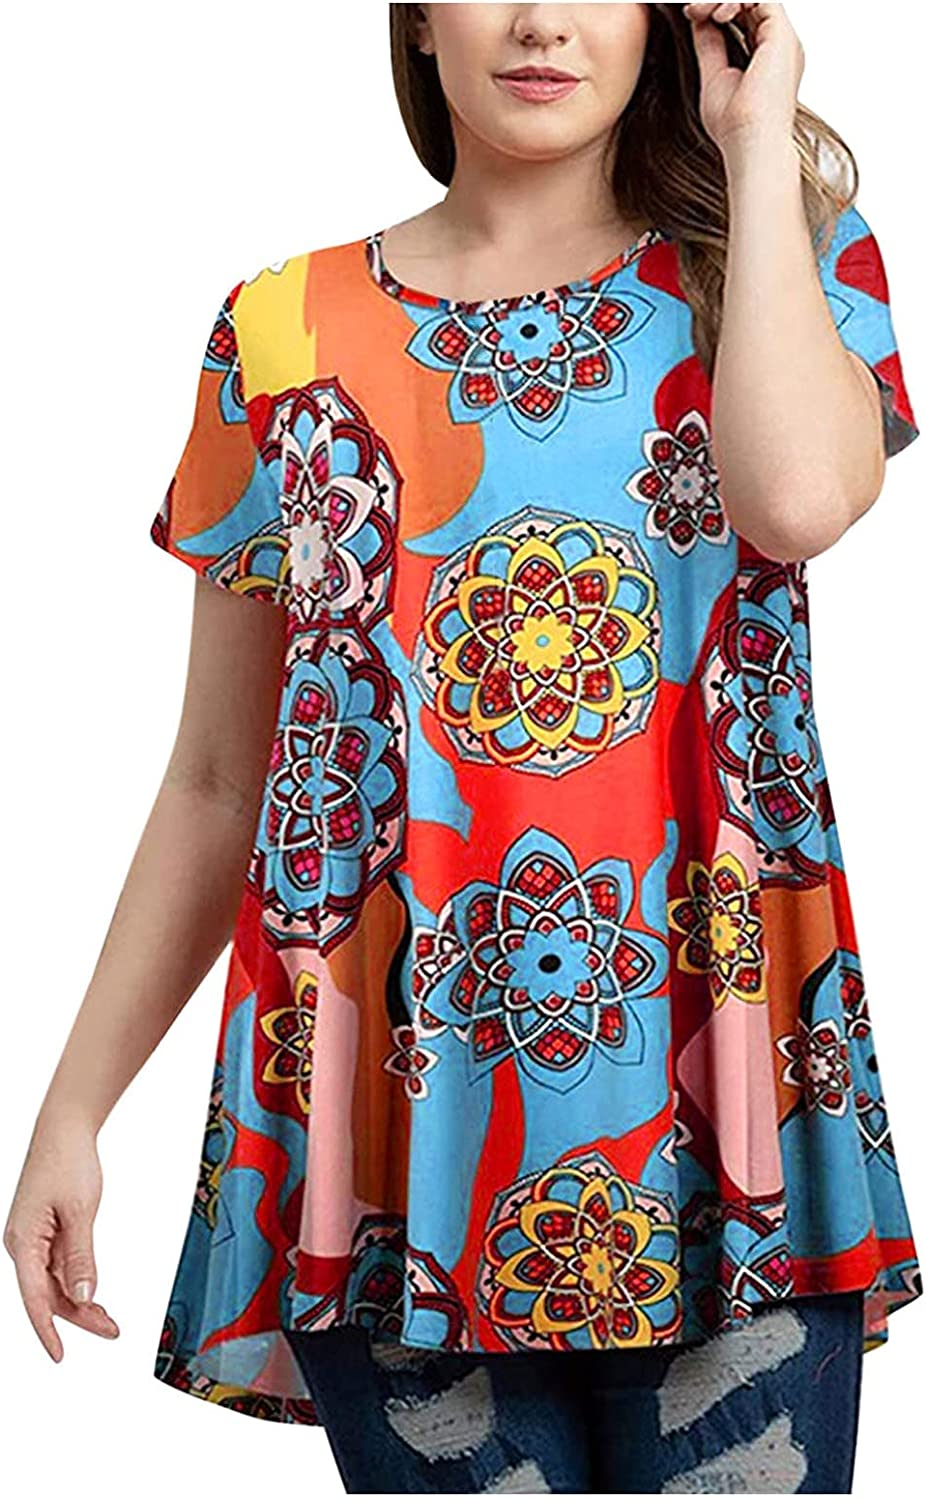 Floral Shirt for Women Crew Neck Print Casual Short Sleeve Pullo